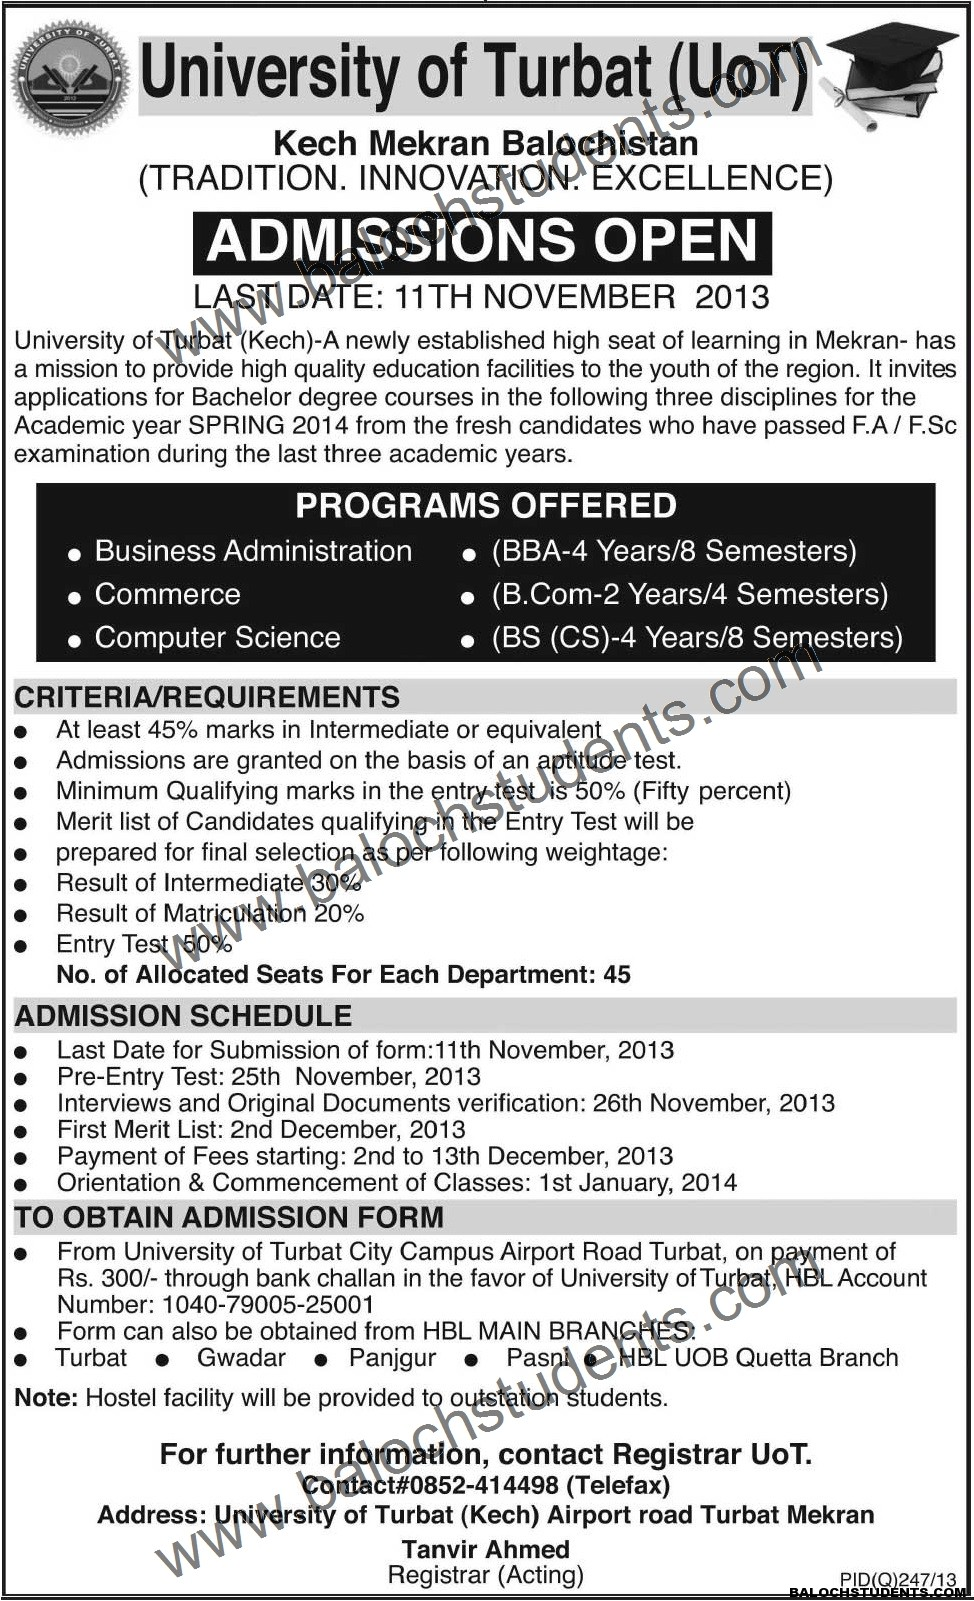 University Of Turbat Admission Notice  Balochstudentscom. What Does Bsn Stand For Office 360 Sharepoint. Free Contact Management Software. Warehouse Racks Houston Google Address Change. Who Invented Glass Windows Www Electric Cars. Electronic Medical Records Company. Private Tutor Los Angeles Hyundai 2008 Tucson. What Is An Sr22 Insurance Hr Project Manager. Top Dental Hygiene Schools Total Senior Care